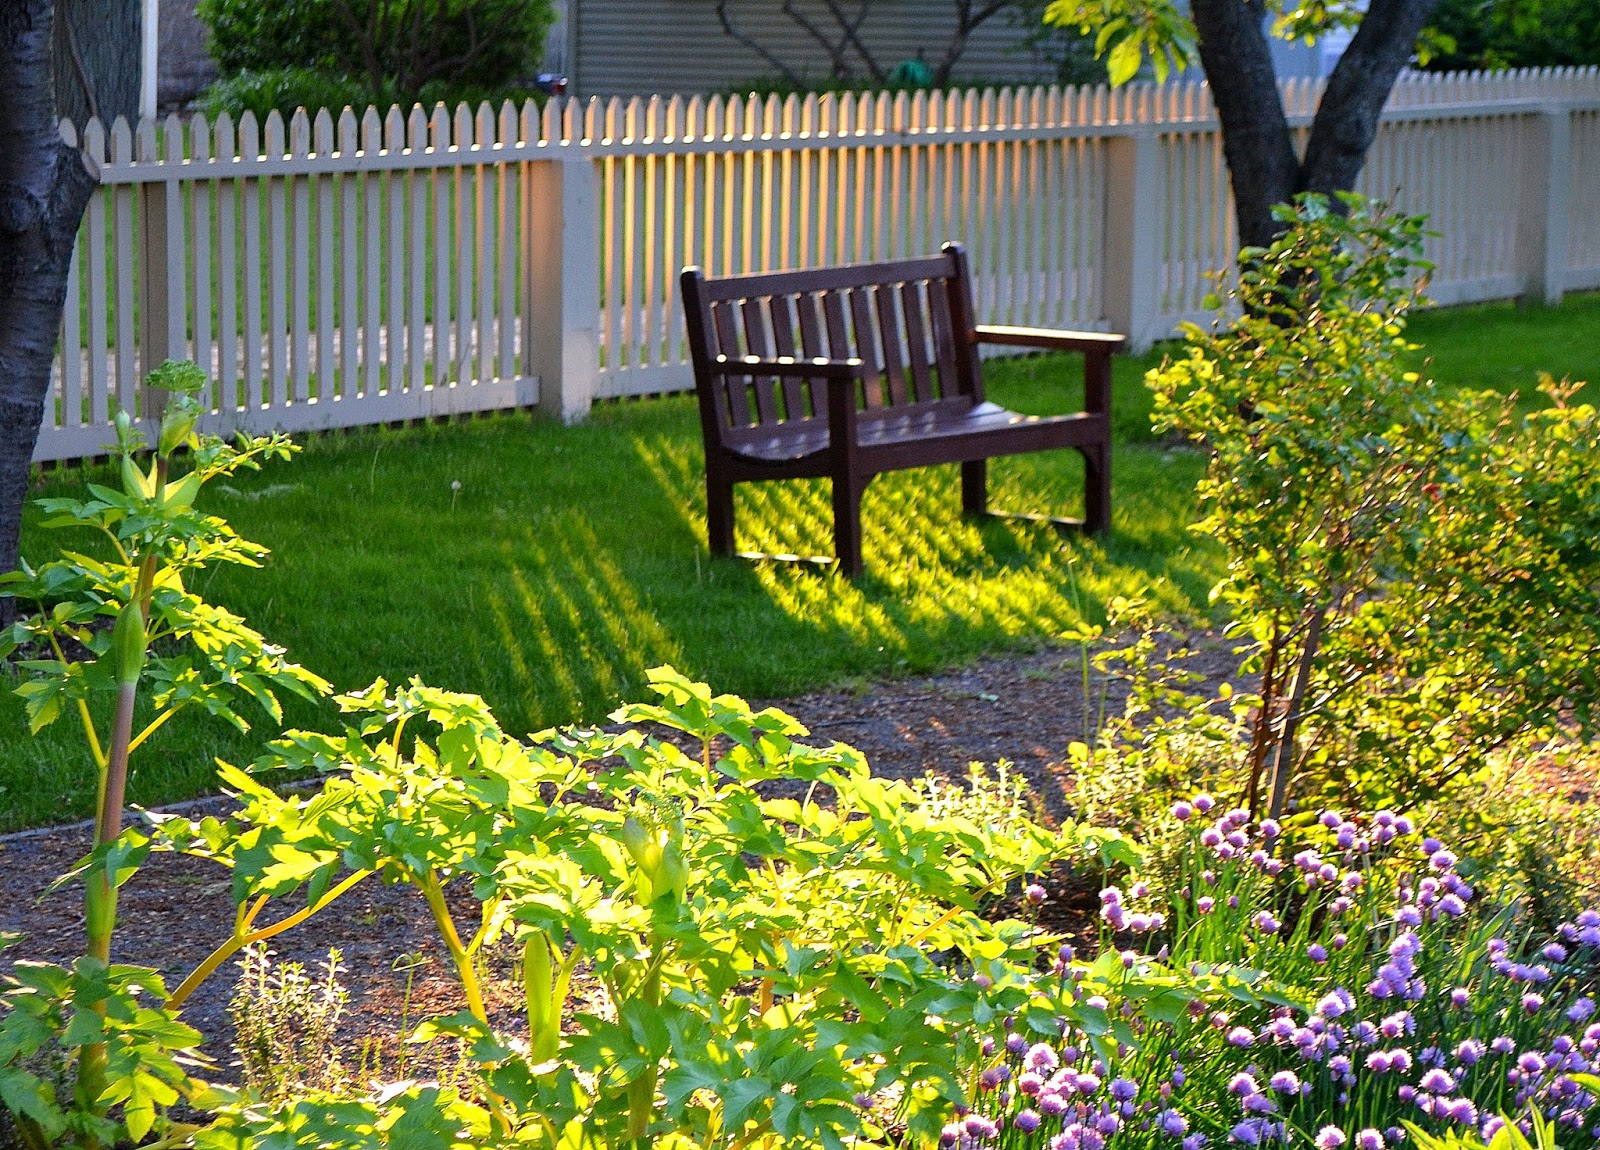 bench, garden, green, grass, summer, shadow, picket, fence